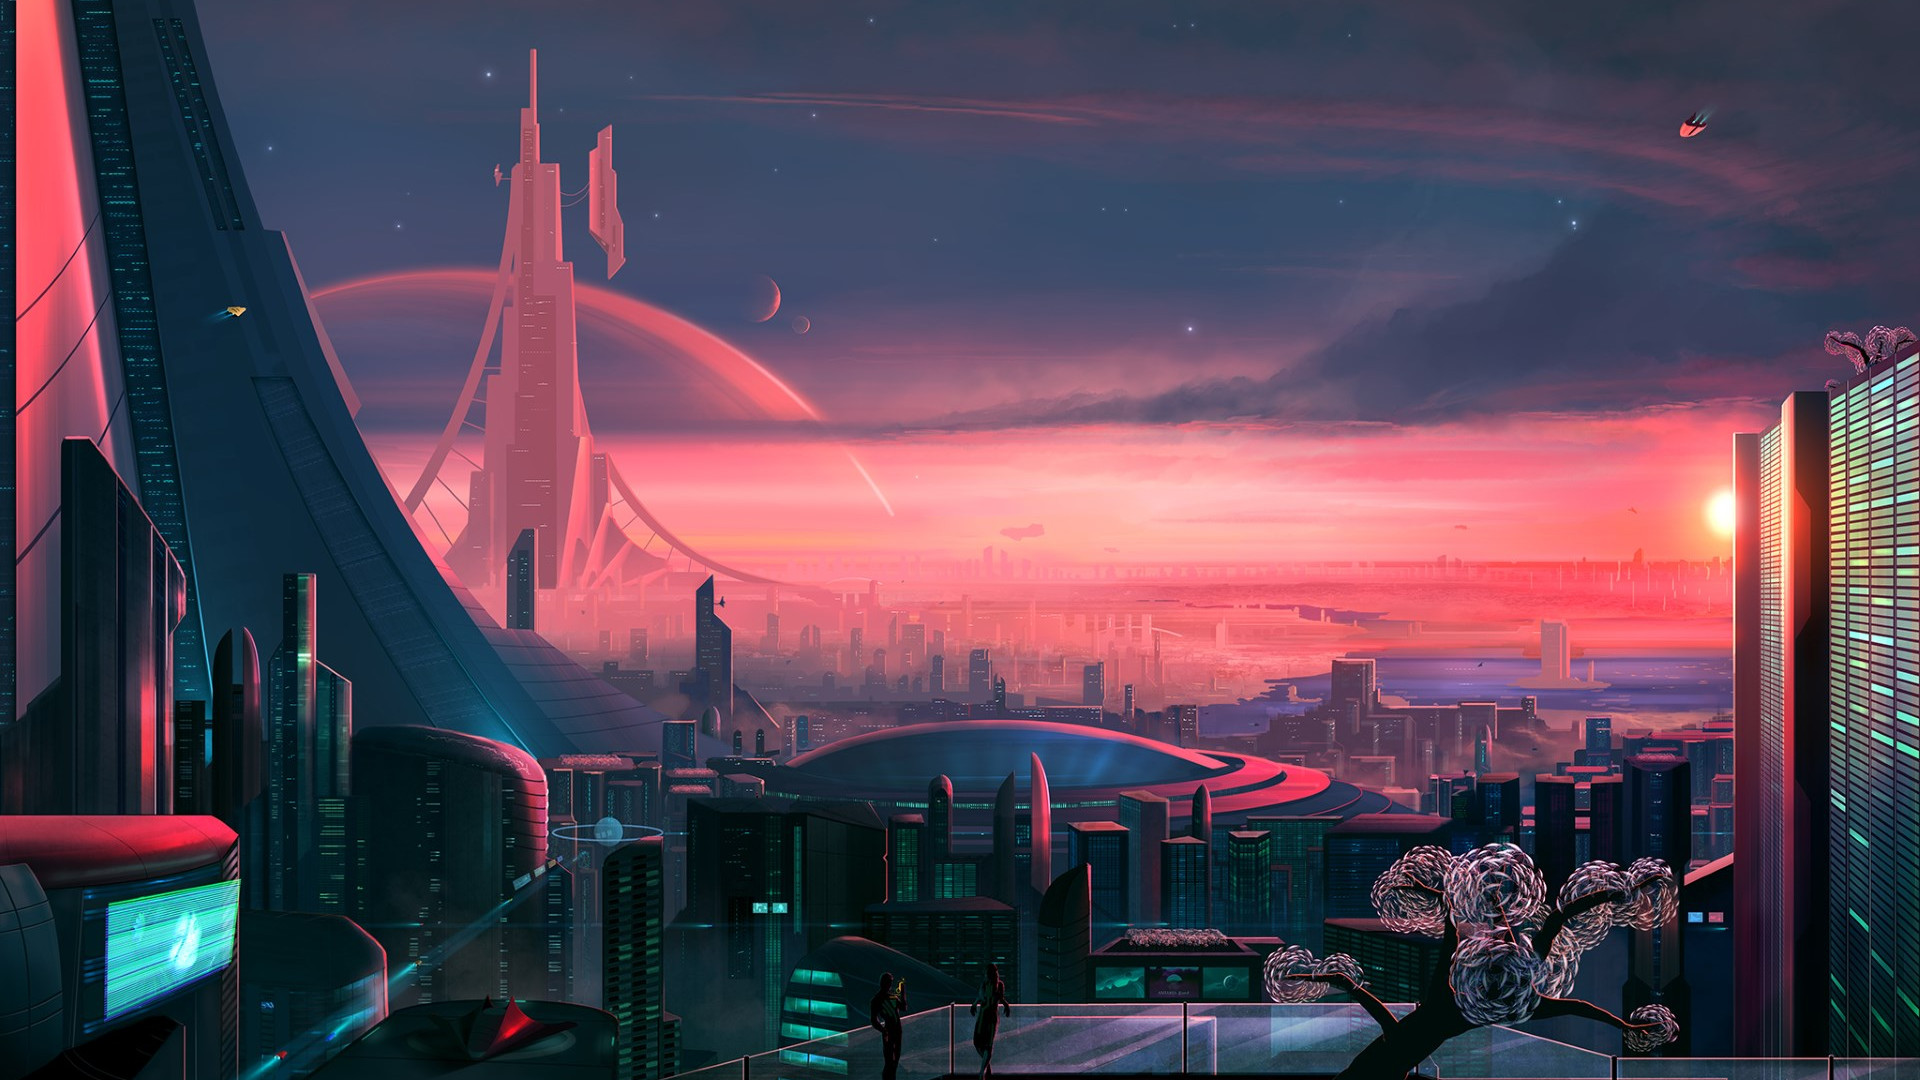 Antares. The metropolis of the future | 1920x1080 wallpaper